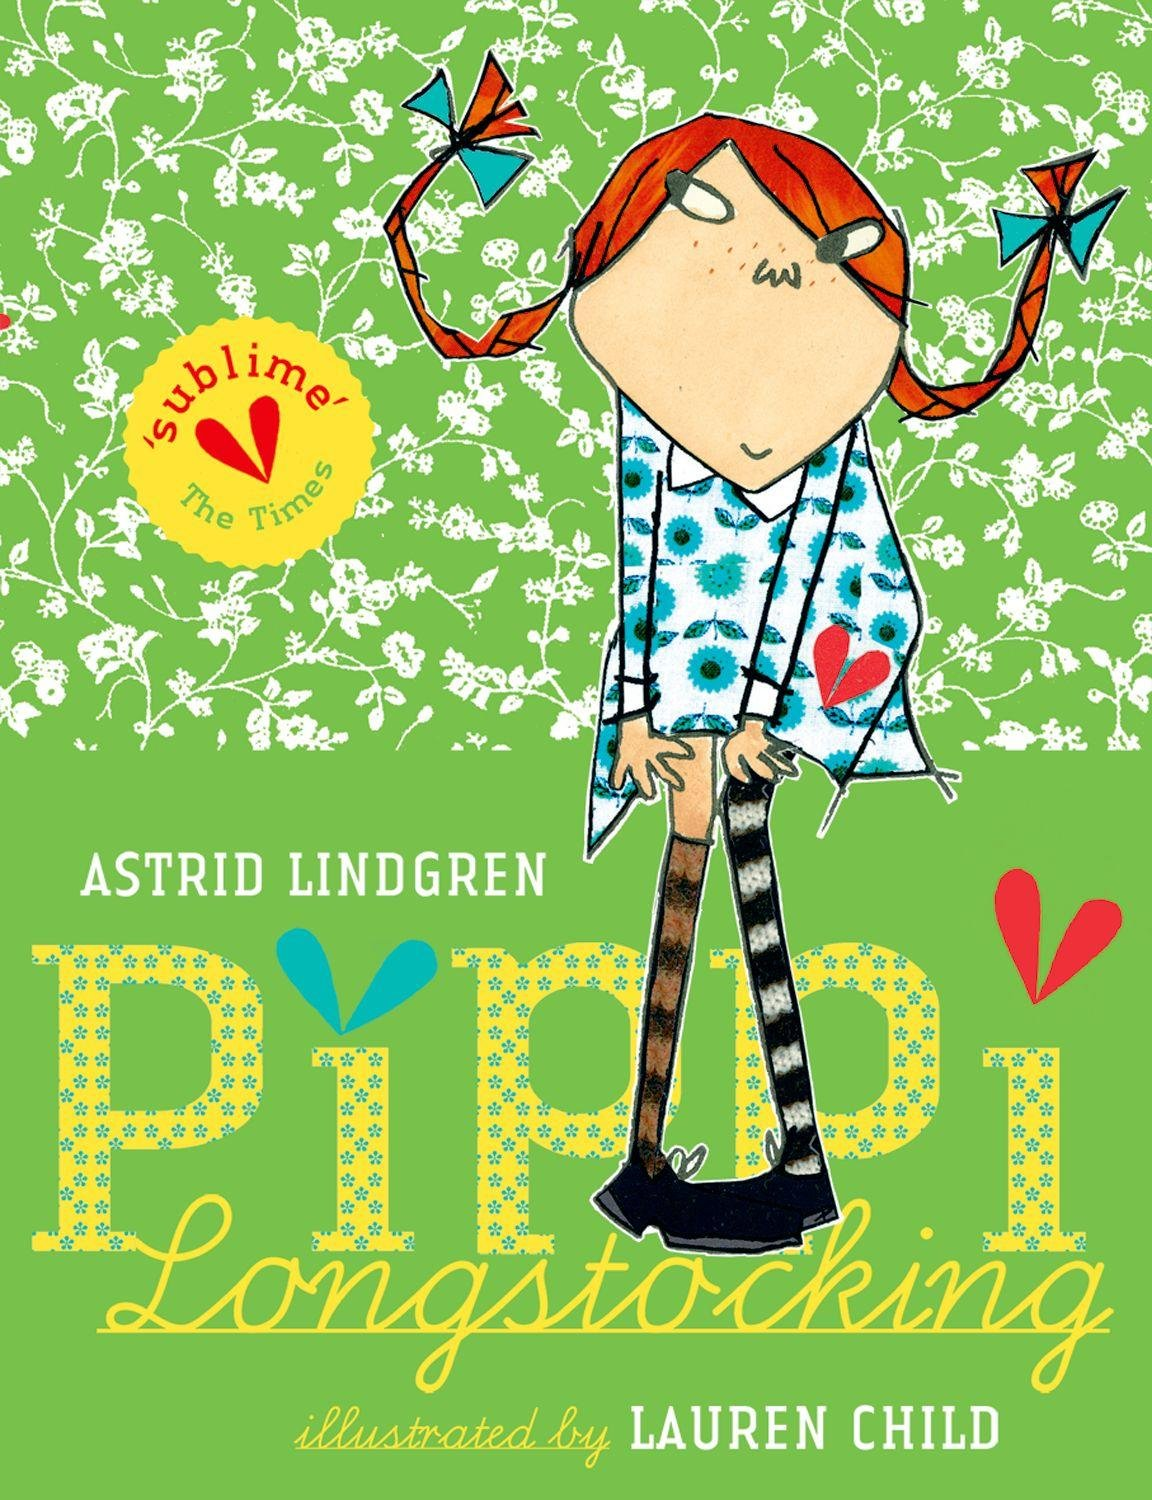 Checking Out Pippi Longstocking From >> Pippi Longstocking Gift Edition Amazon Co Uk Astrid Lindgren